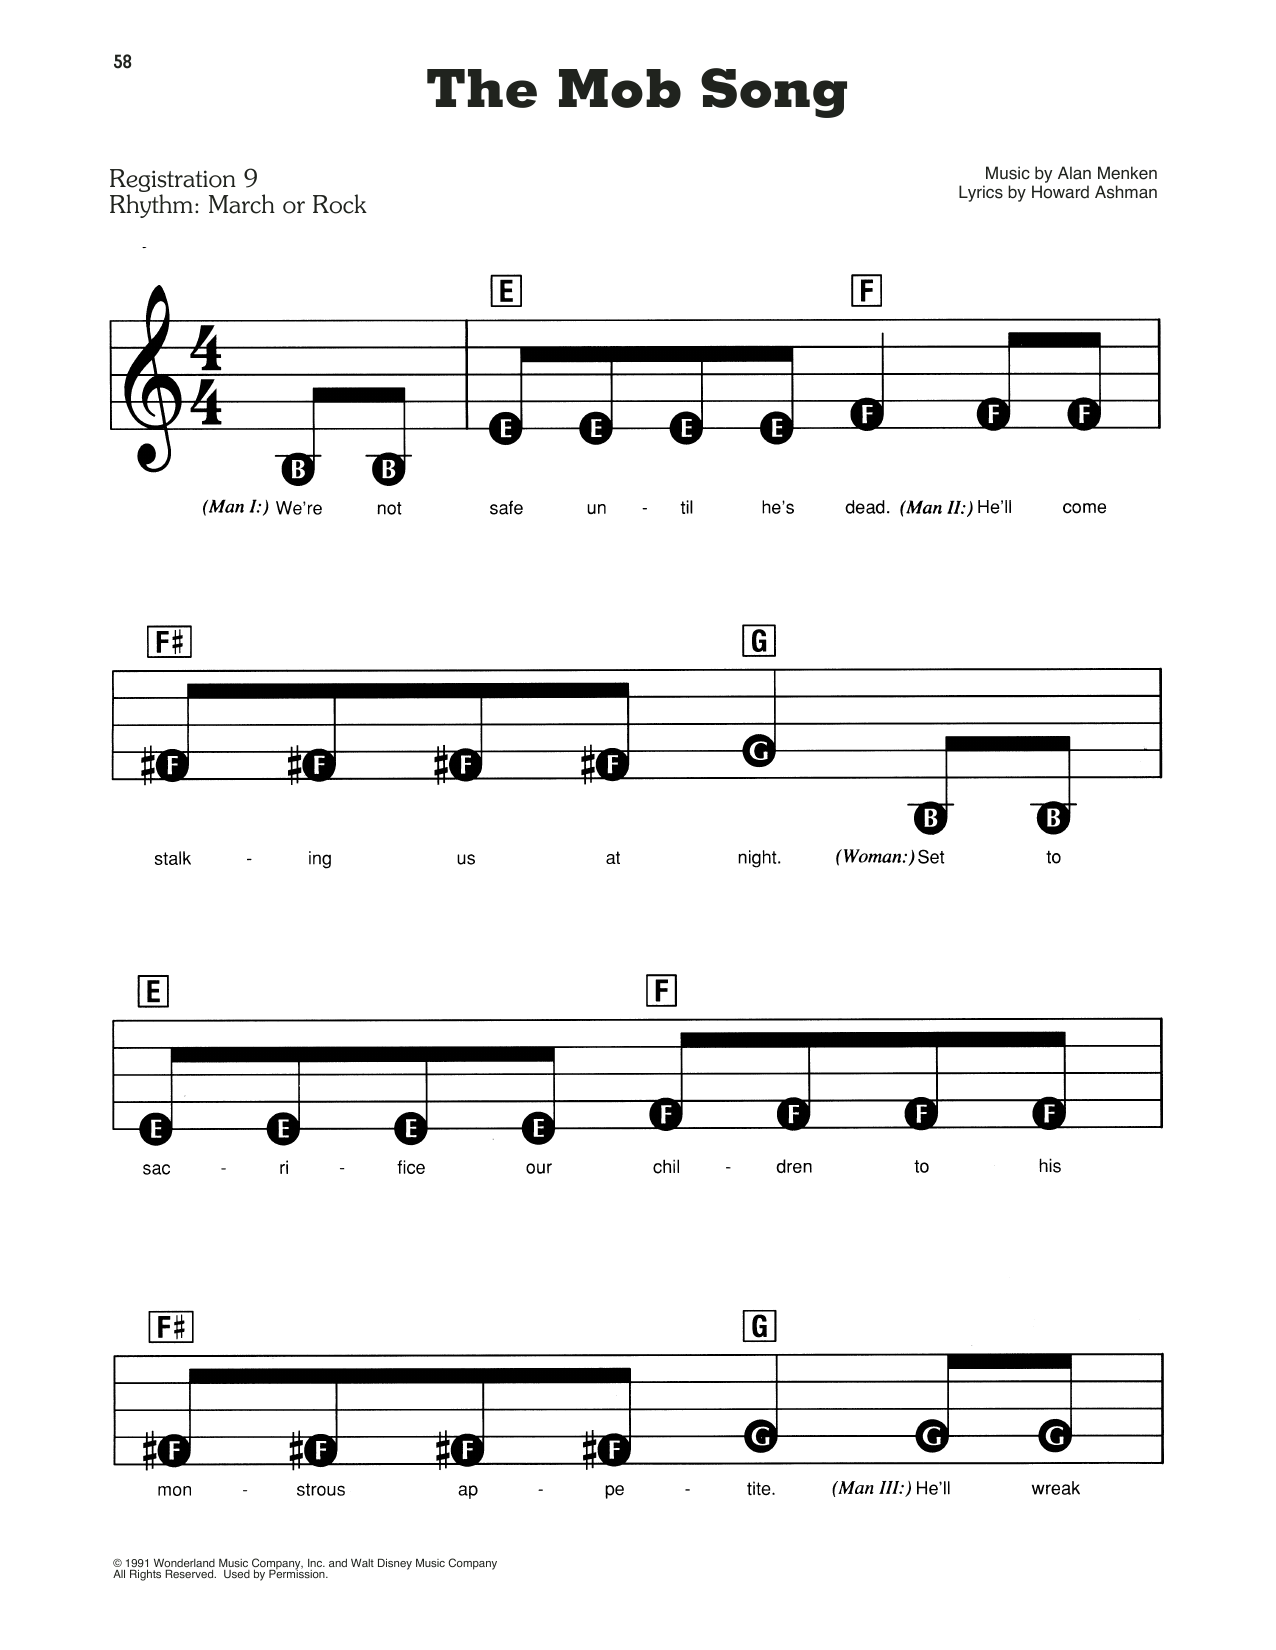 Beauty And The Beast Cast The Mob Song From Beauty And The Beast Sheet Music Download Pdf Score 181162